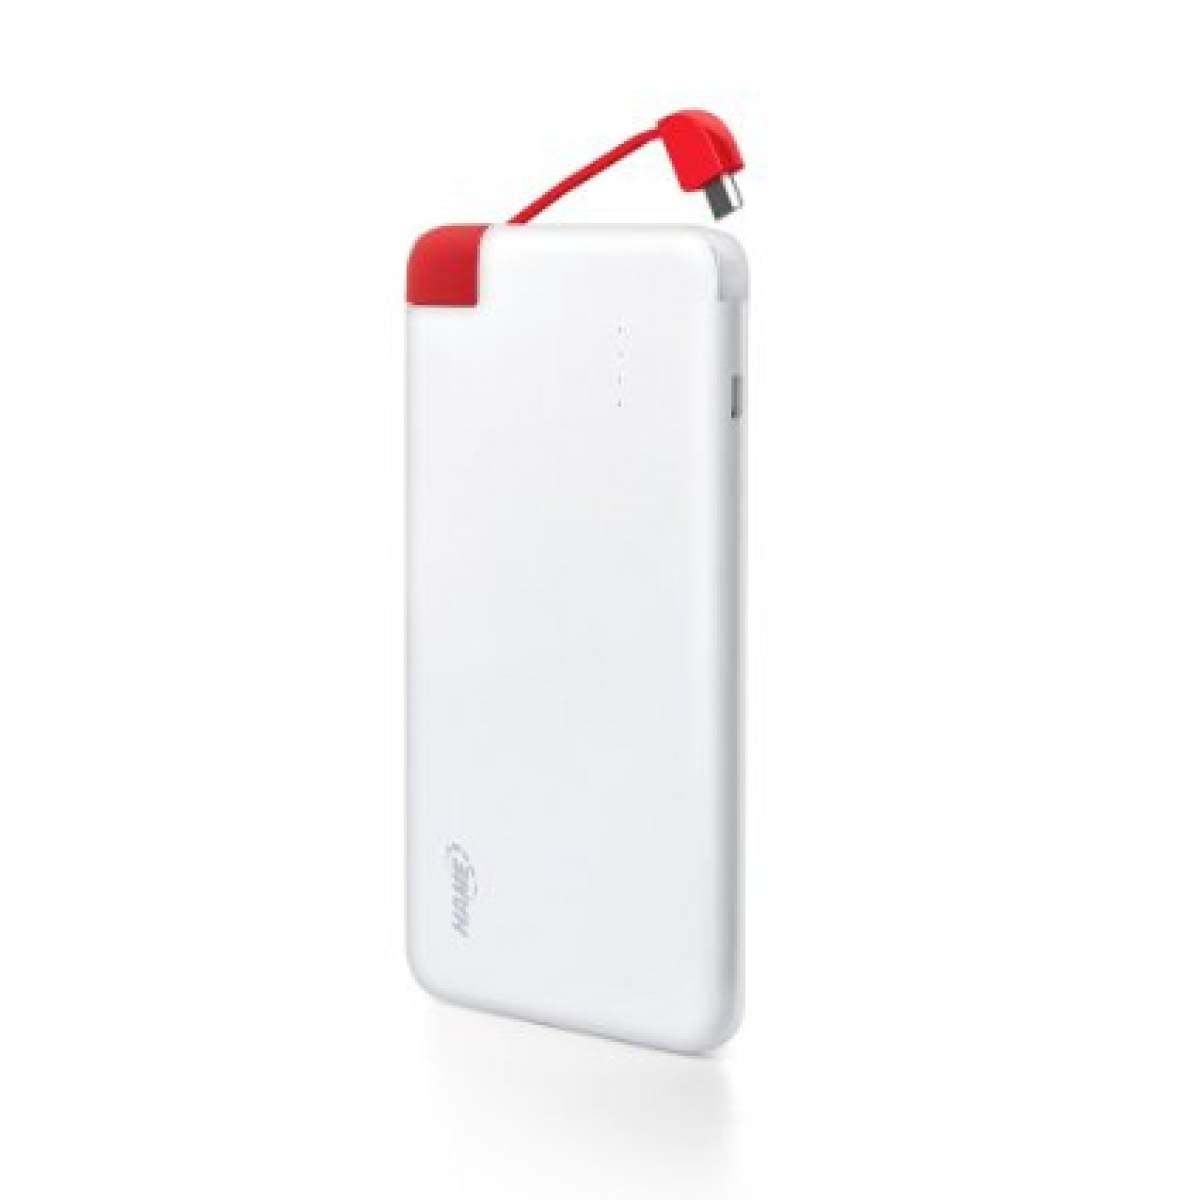 Baterie externa Power bank HAME-T5, 4000mAh, White/Red thumbnail